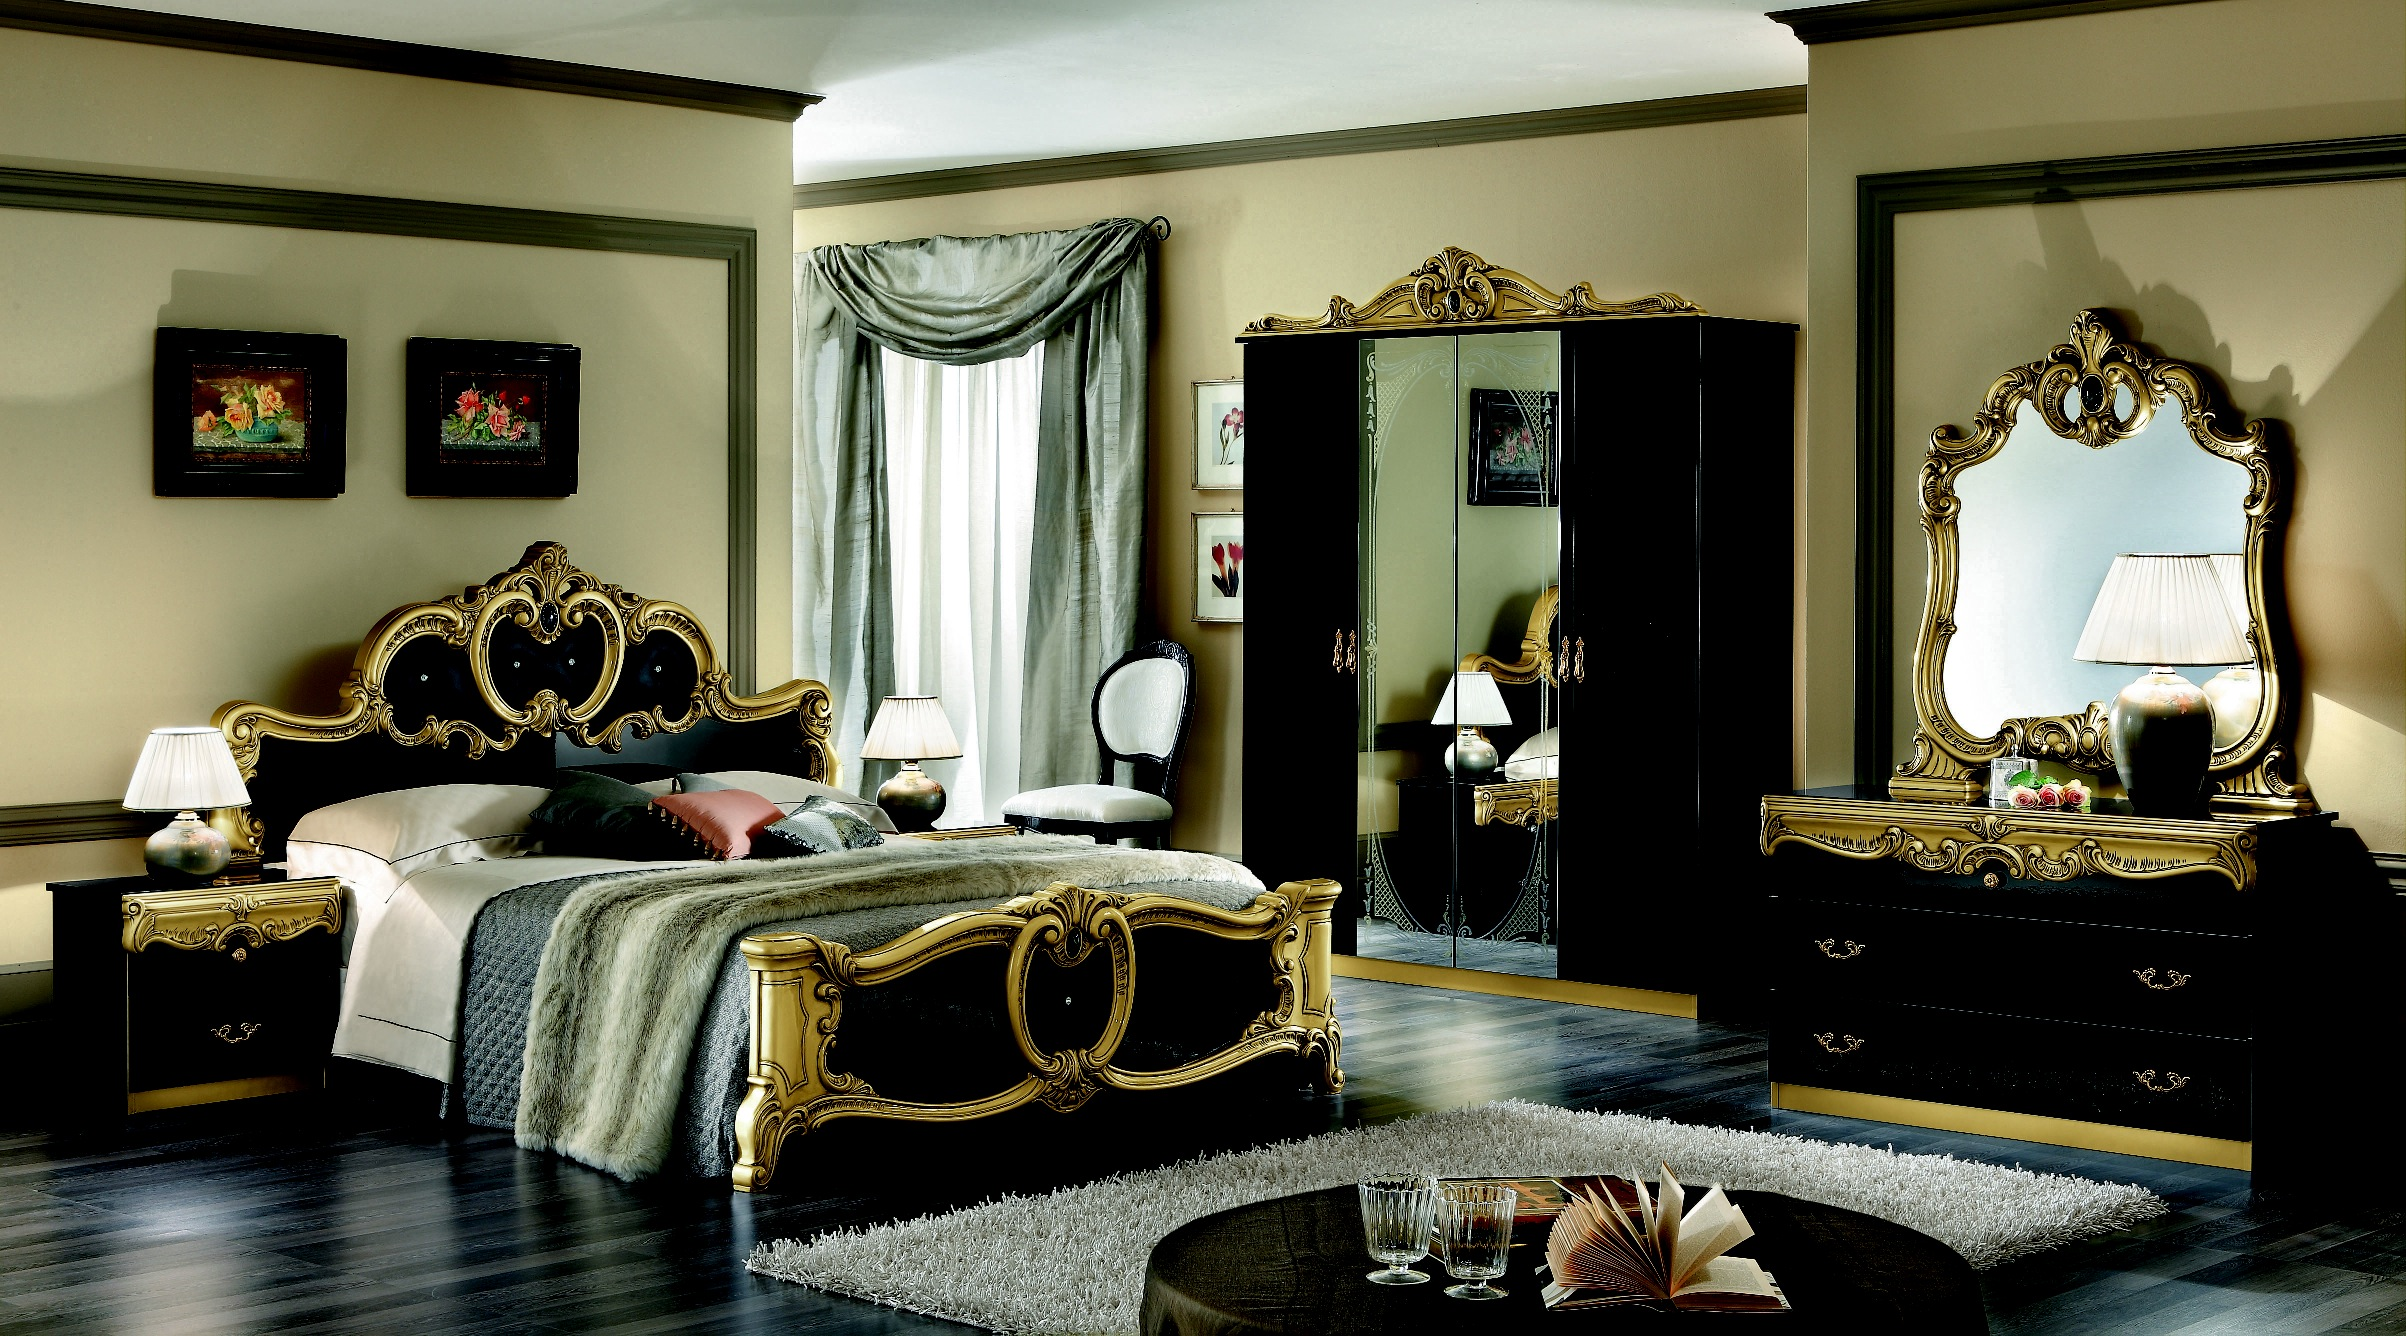 Bedroom suite furniture